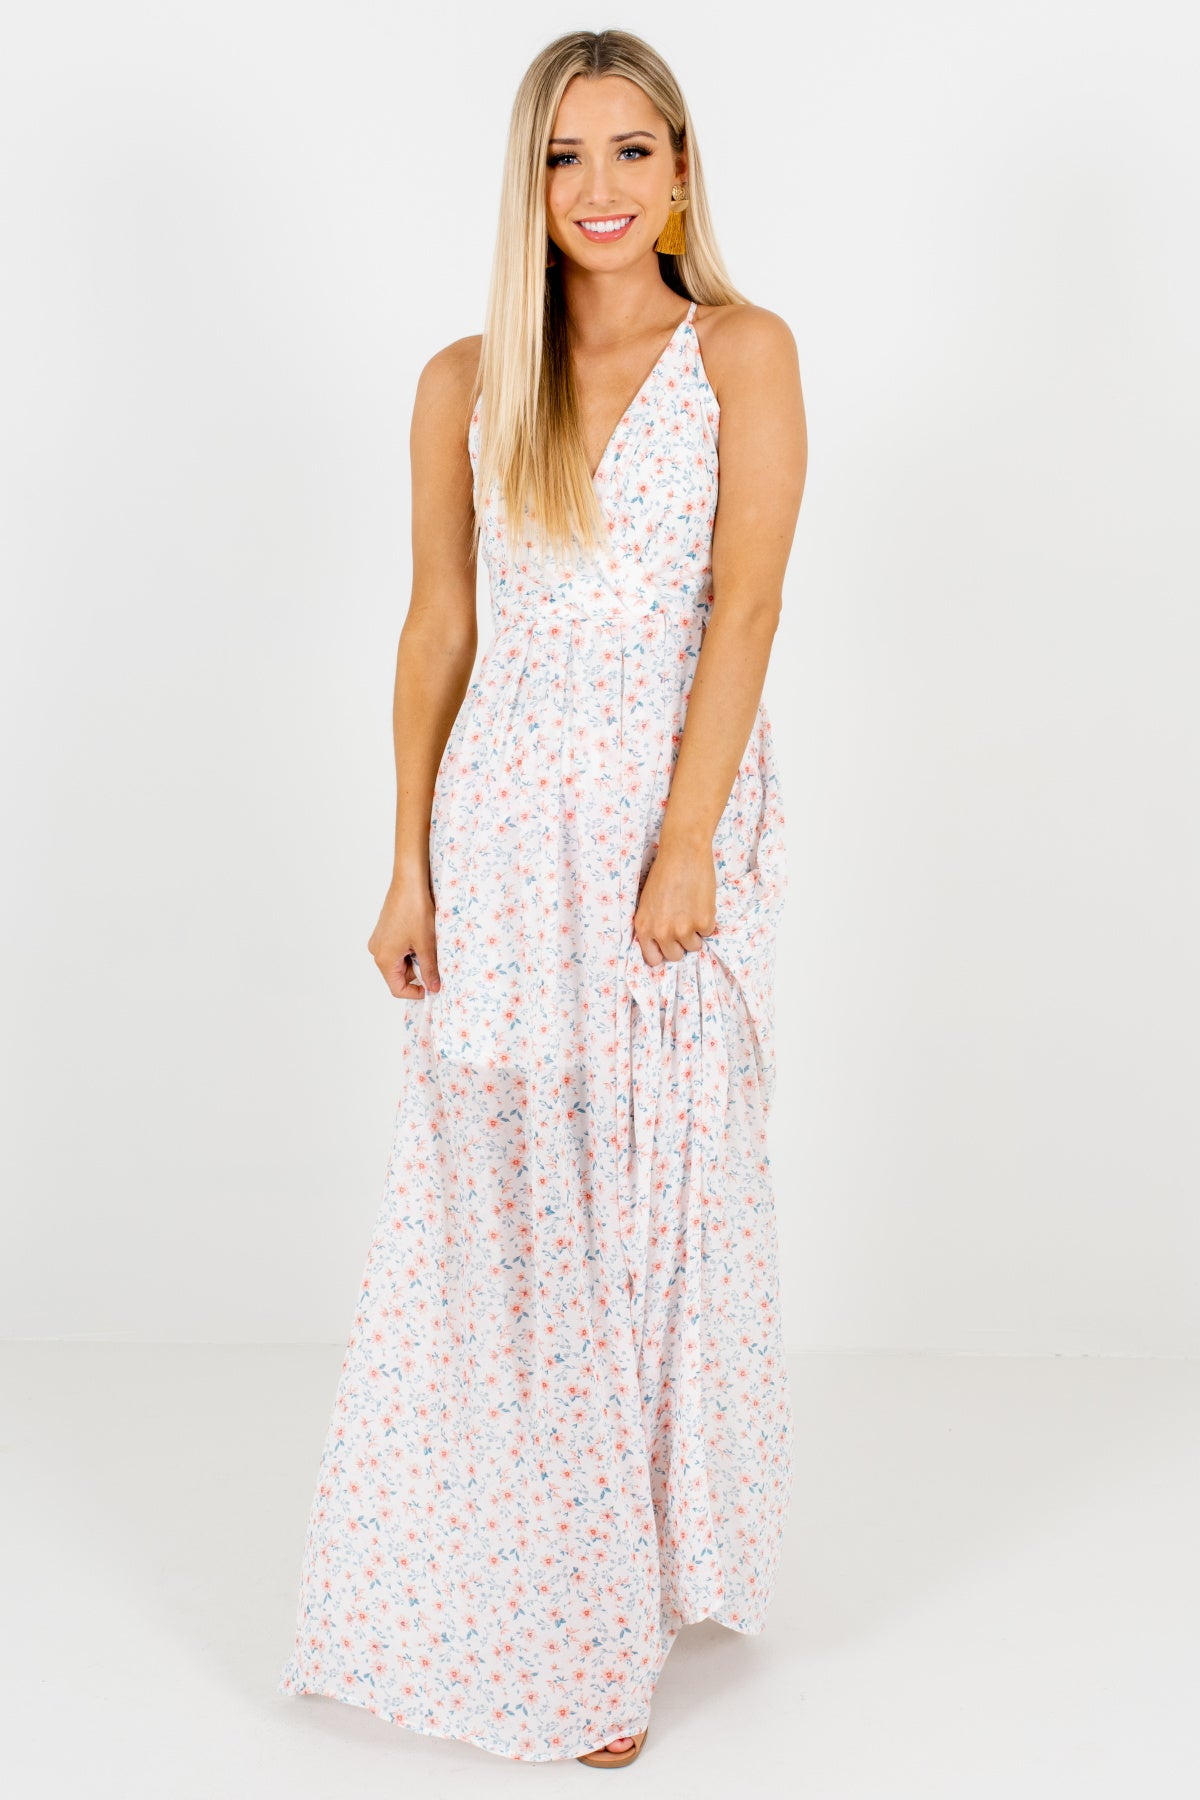 50c509340a White Pink Blue Floral Criss Cross Maxi Dresses Spring Summer